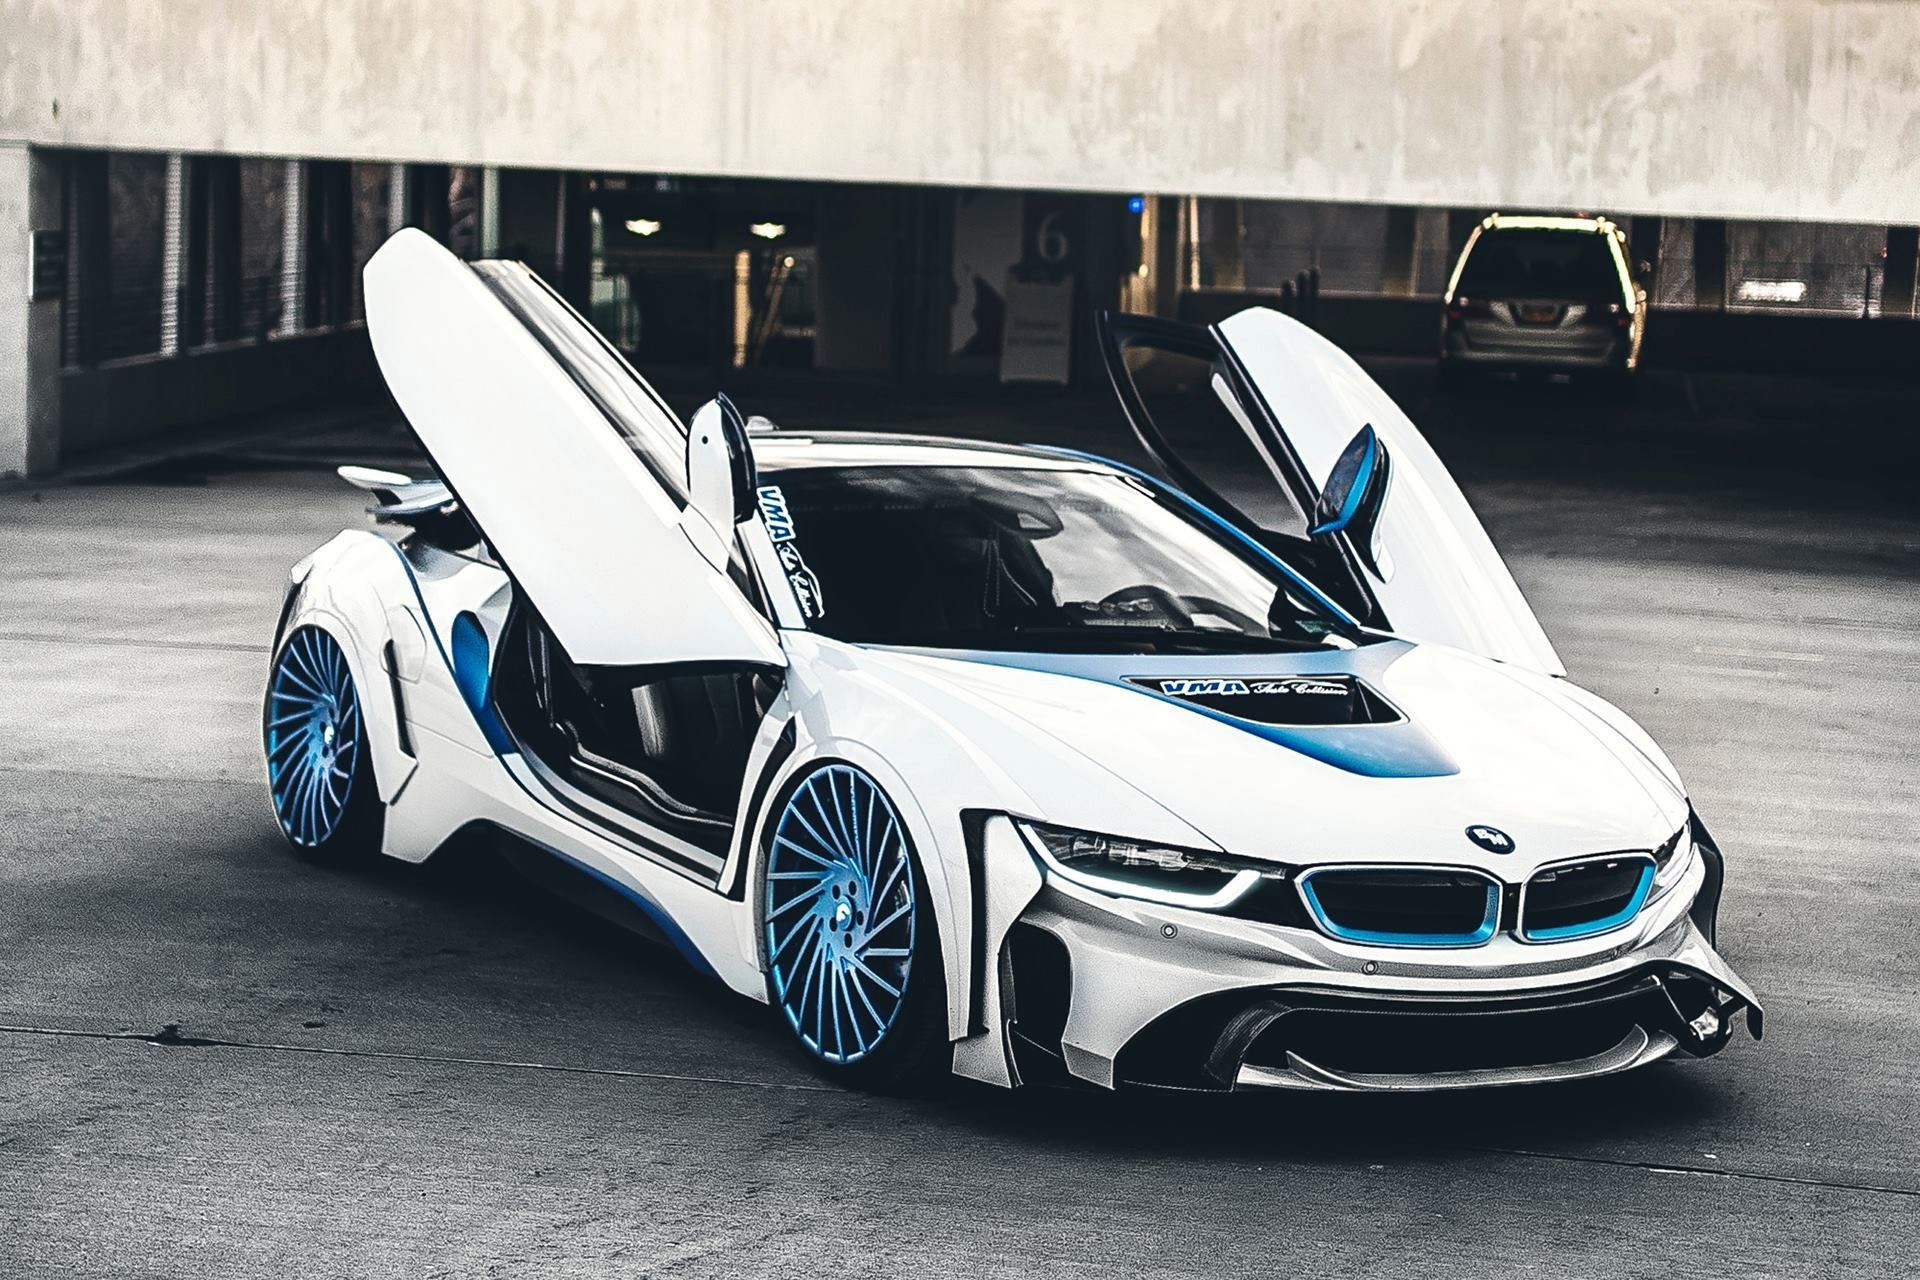 Spaceship In The Form Of The Car Custom White Bmw I8 With Blue Accents Bmw I8 Bmw Bmw Cars